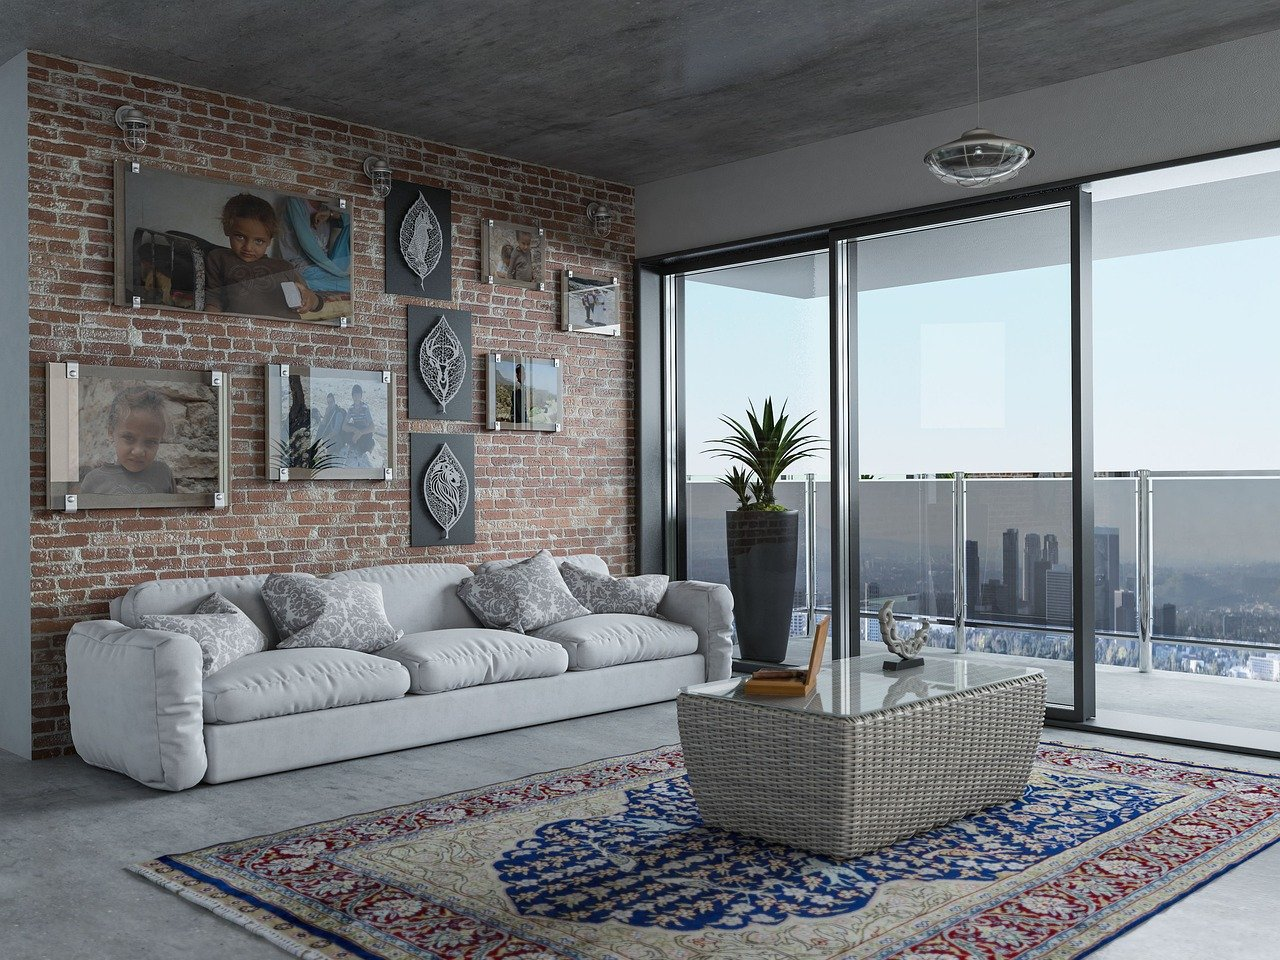 Furnished apartments for travel, window view